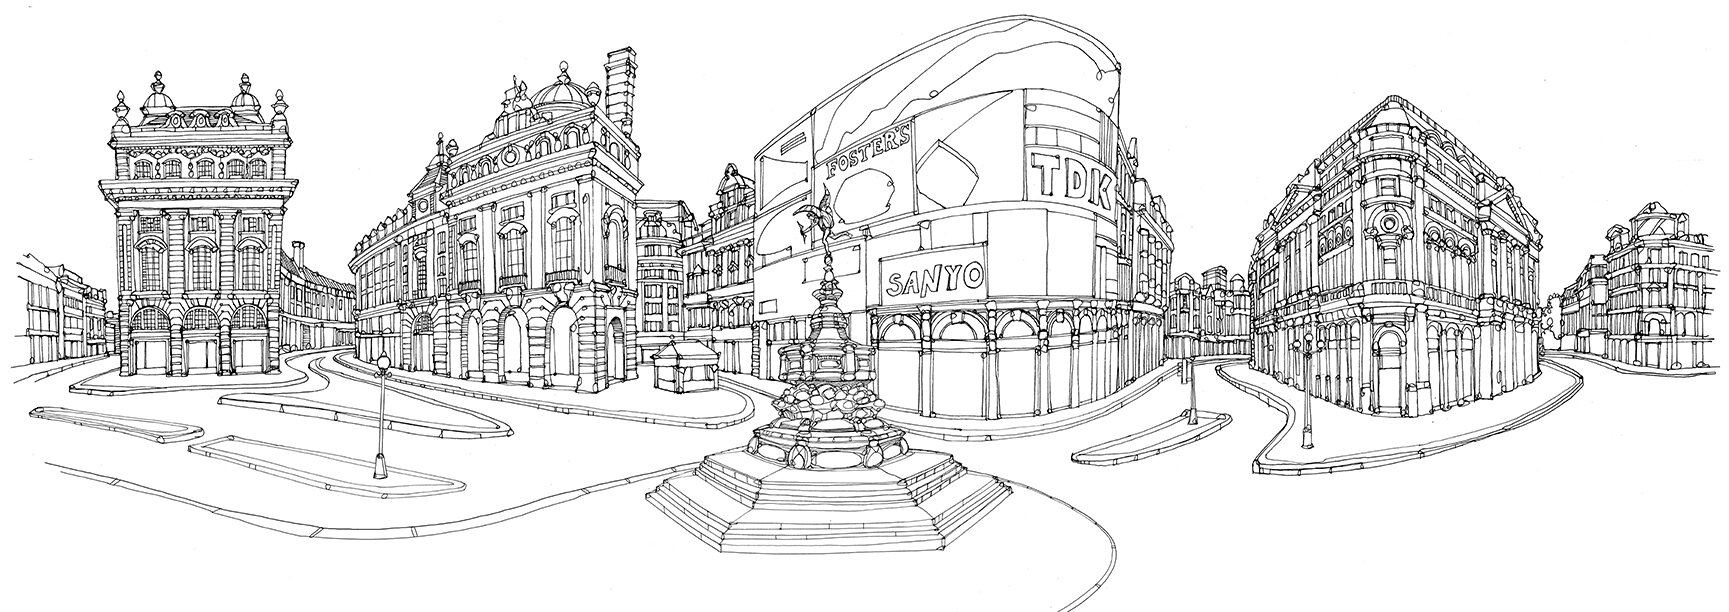 piccadilly low res.jpg